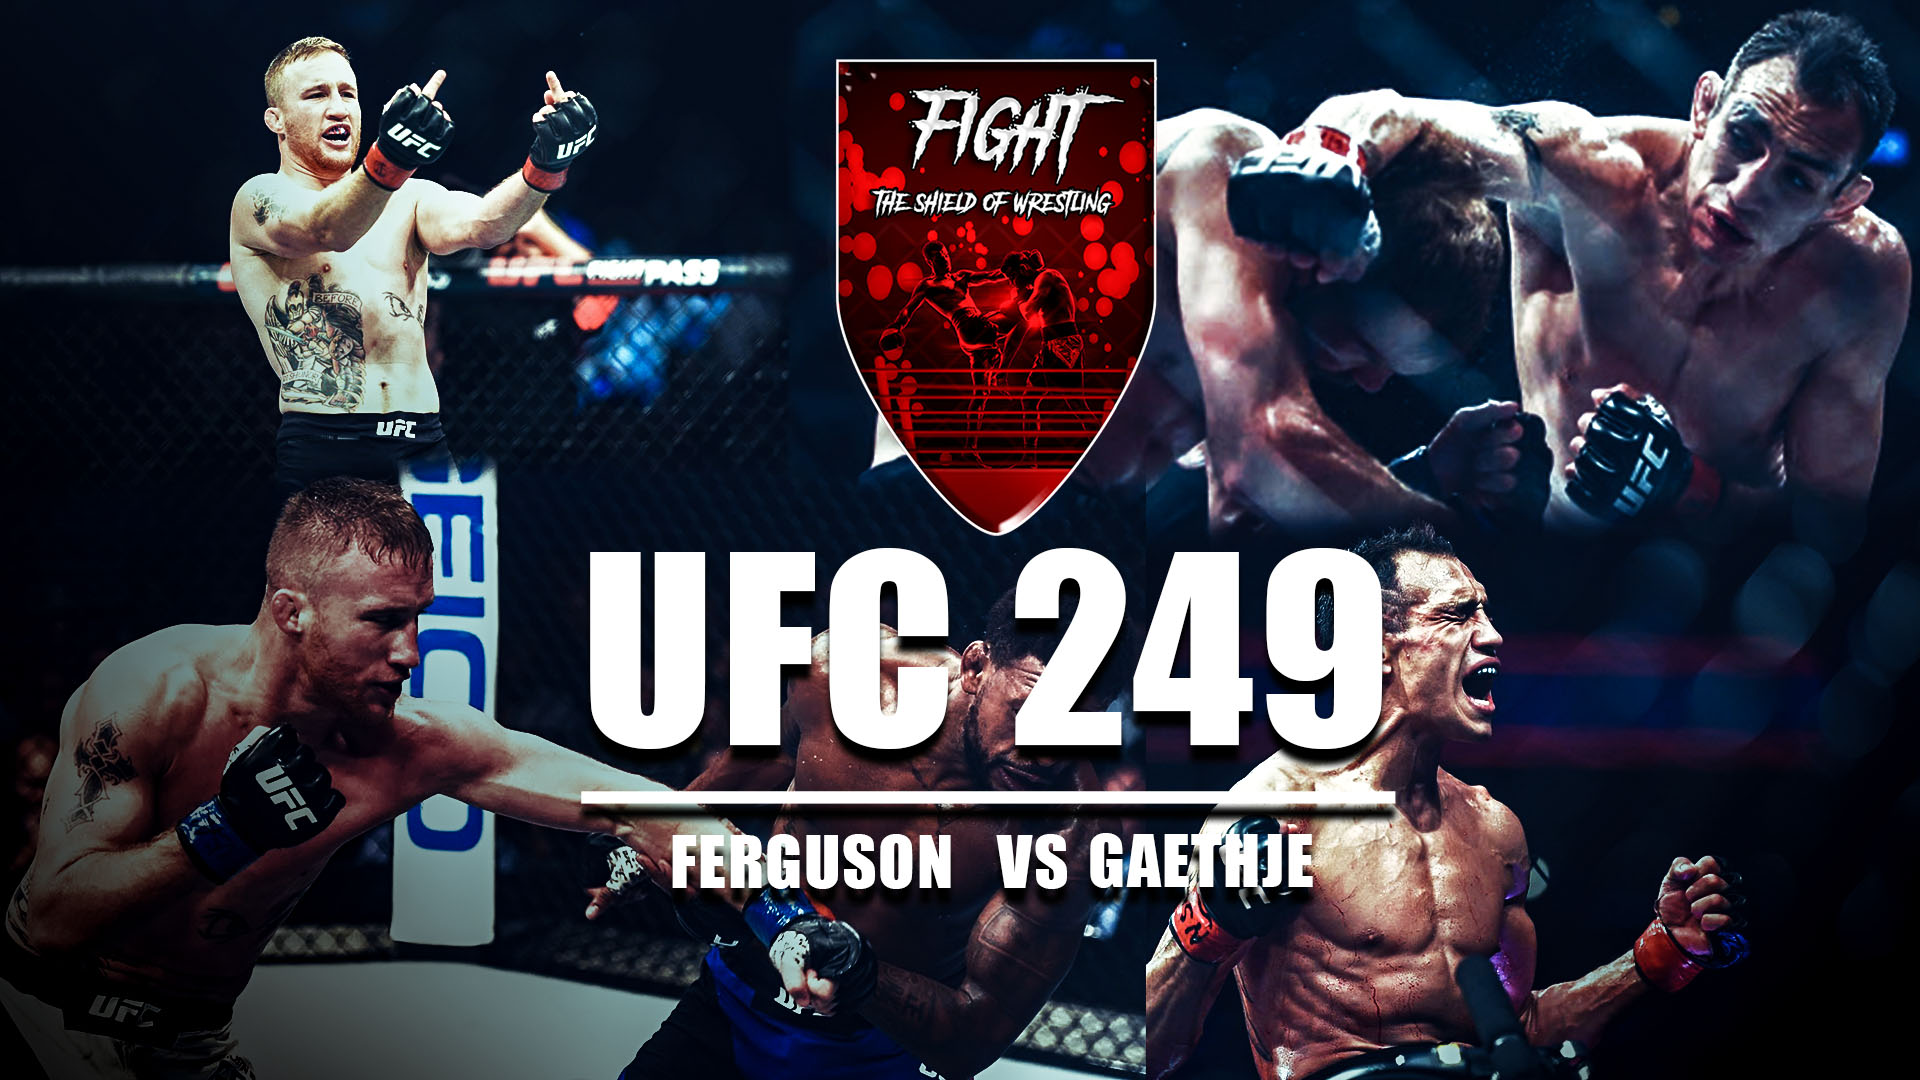 UFC 249: Ferguson vs Gaethje preview